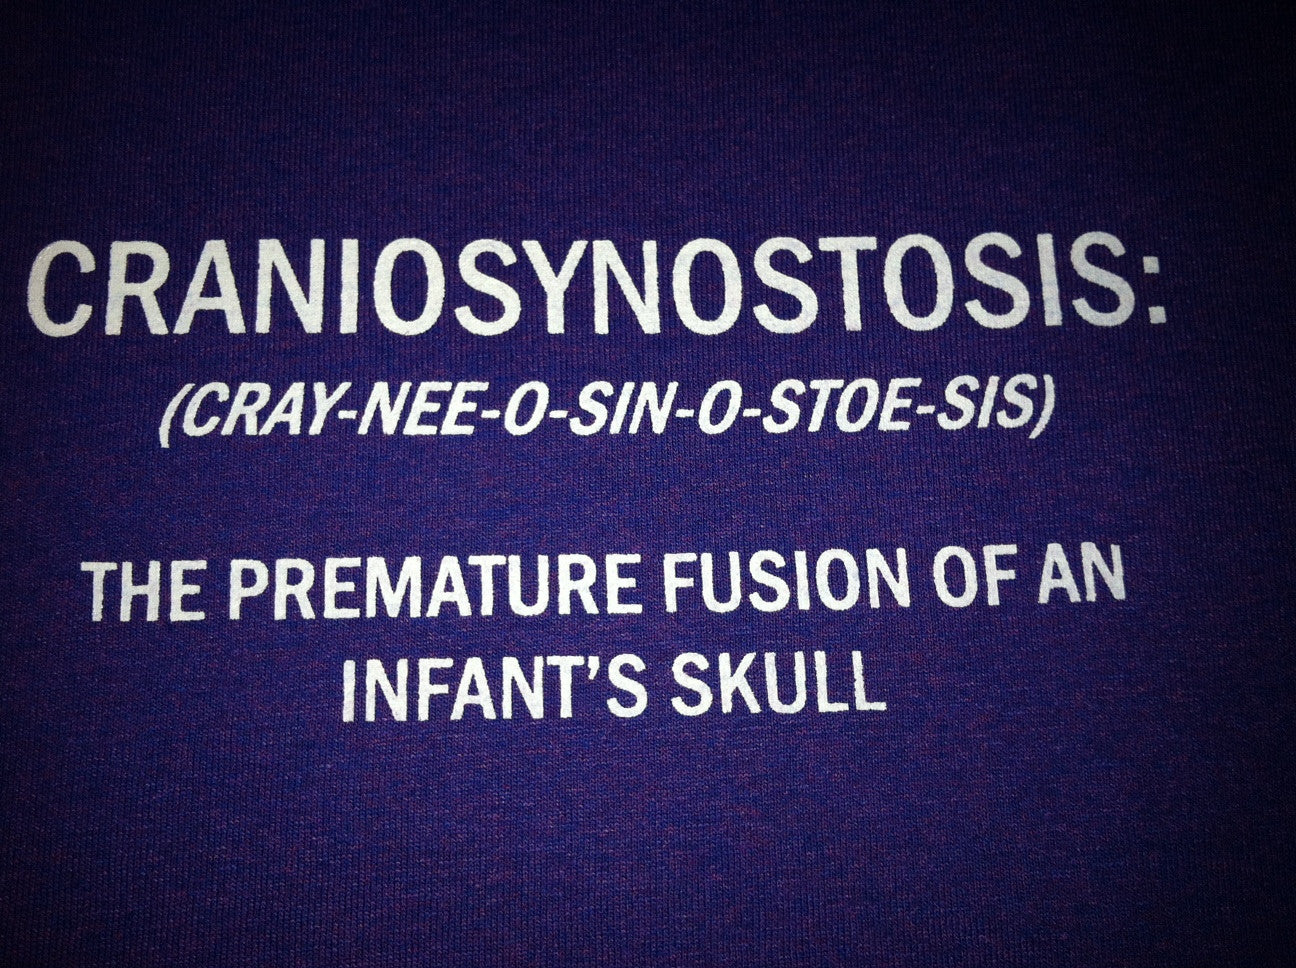 CRANIOSYNOSTOSIS: definition purple shirt with white lettering